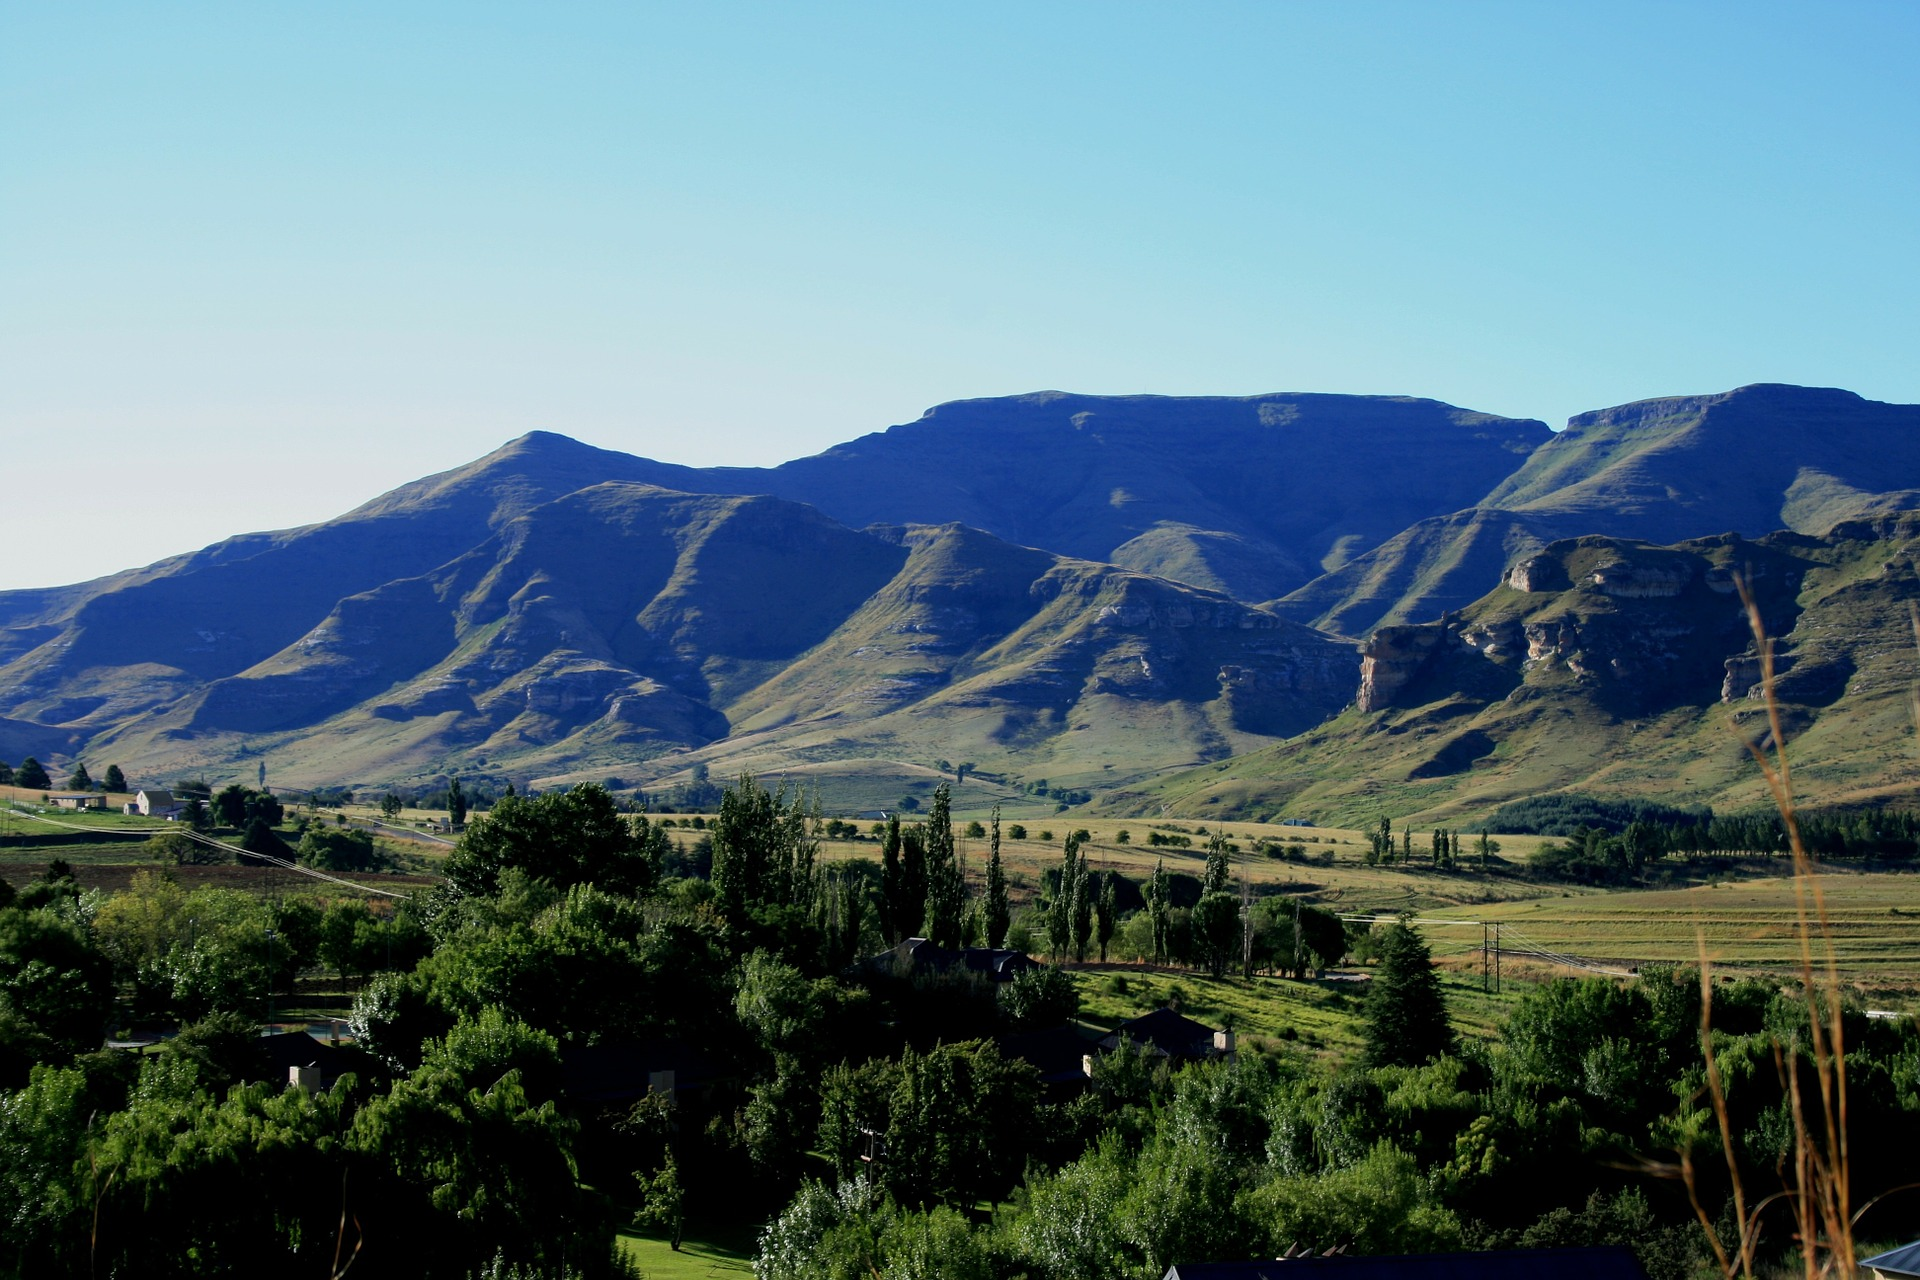 drakensberg-mountains-168203_1920